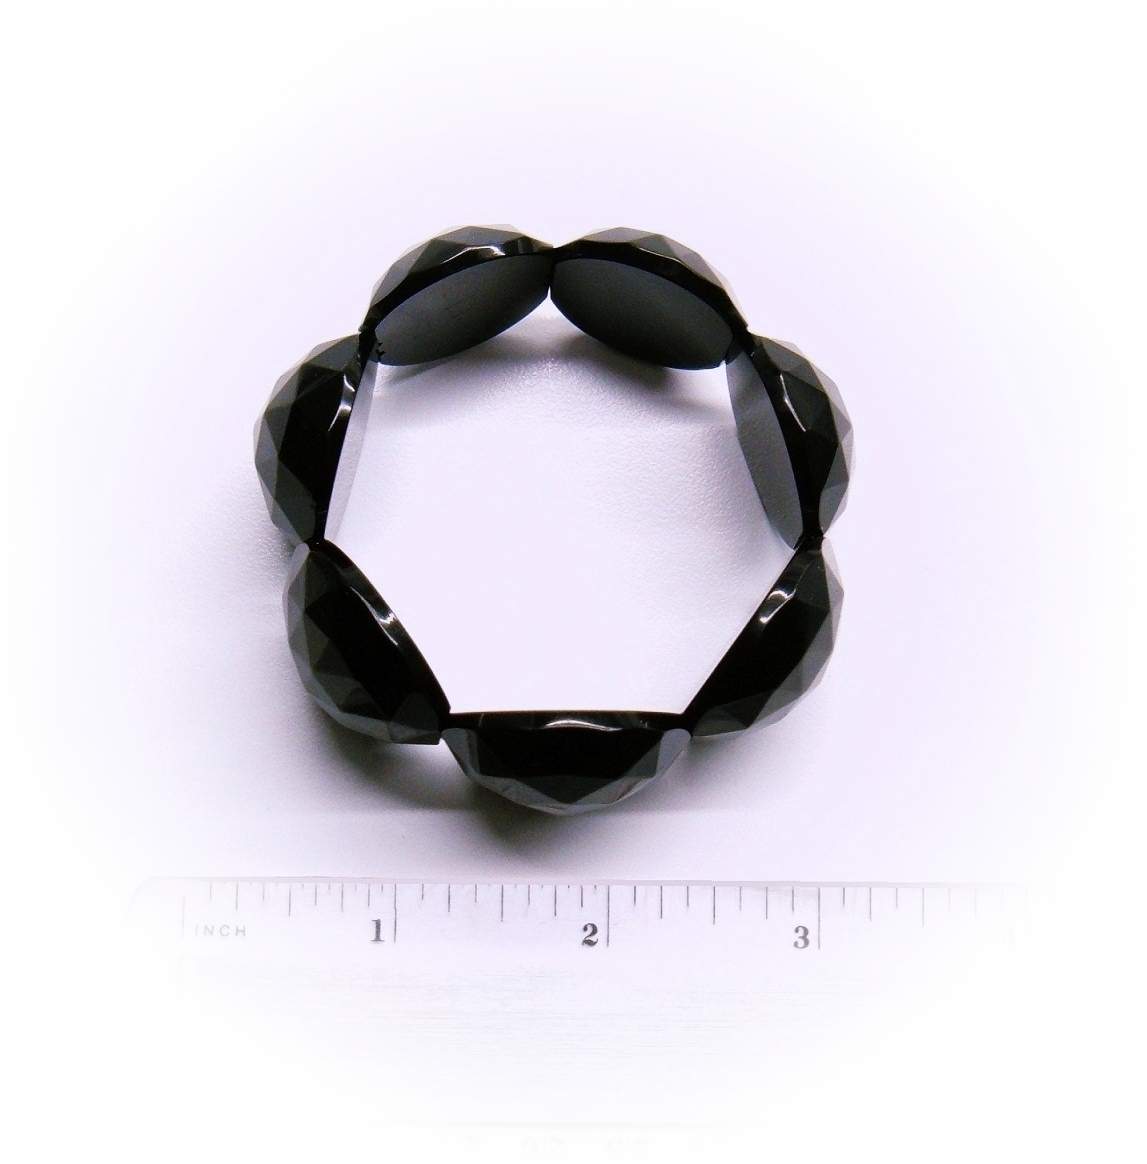 c.1880 Antique Whitby Jet Large Round Rose Cut Links Hand Carved Bracelet